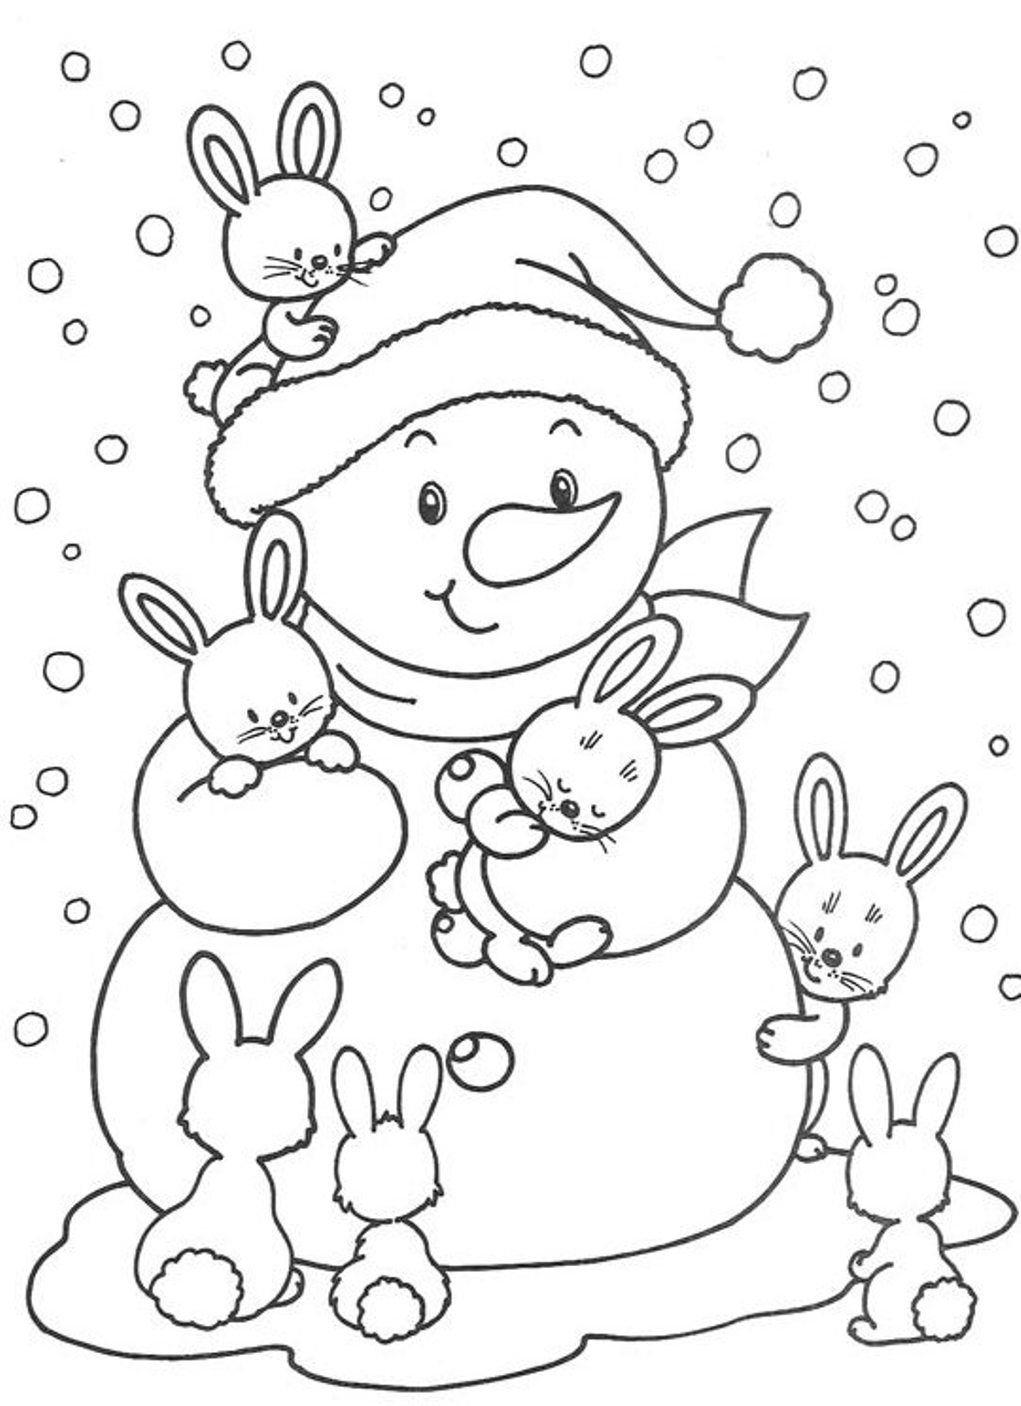 Free winter coloring pages for kids - Winter Coloring Pages Free Online Printable Coloring Pages Sheets For Kids Get The Latest Free Winter Coloring Pages Images Favorite Coloring Pages To